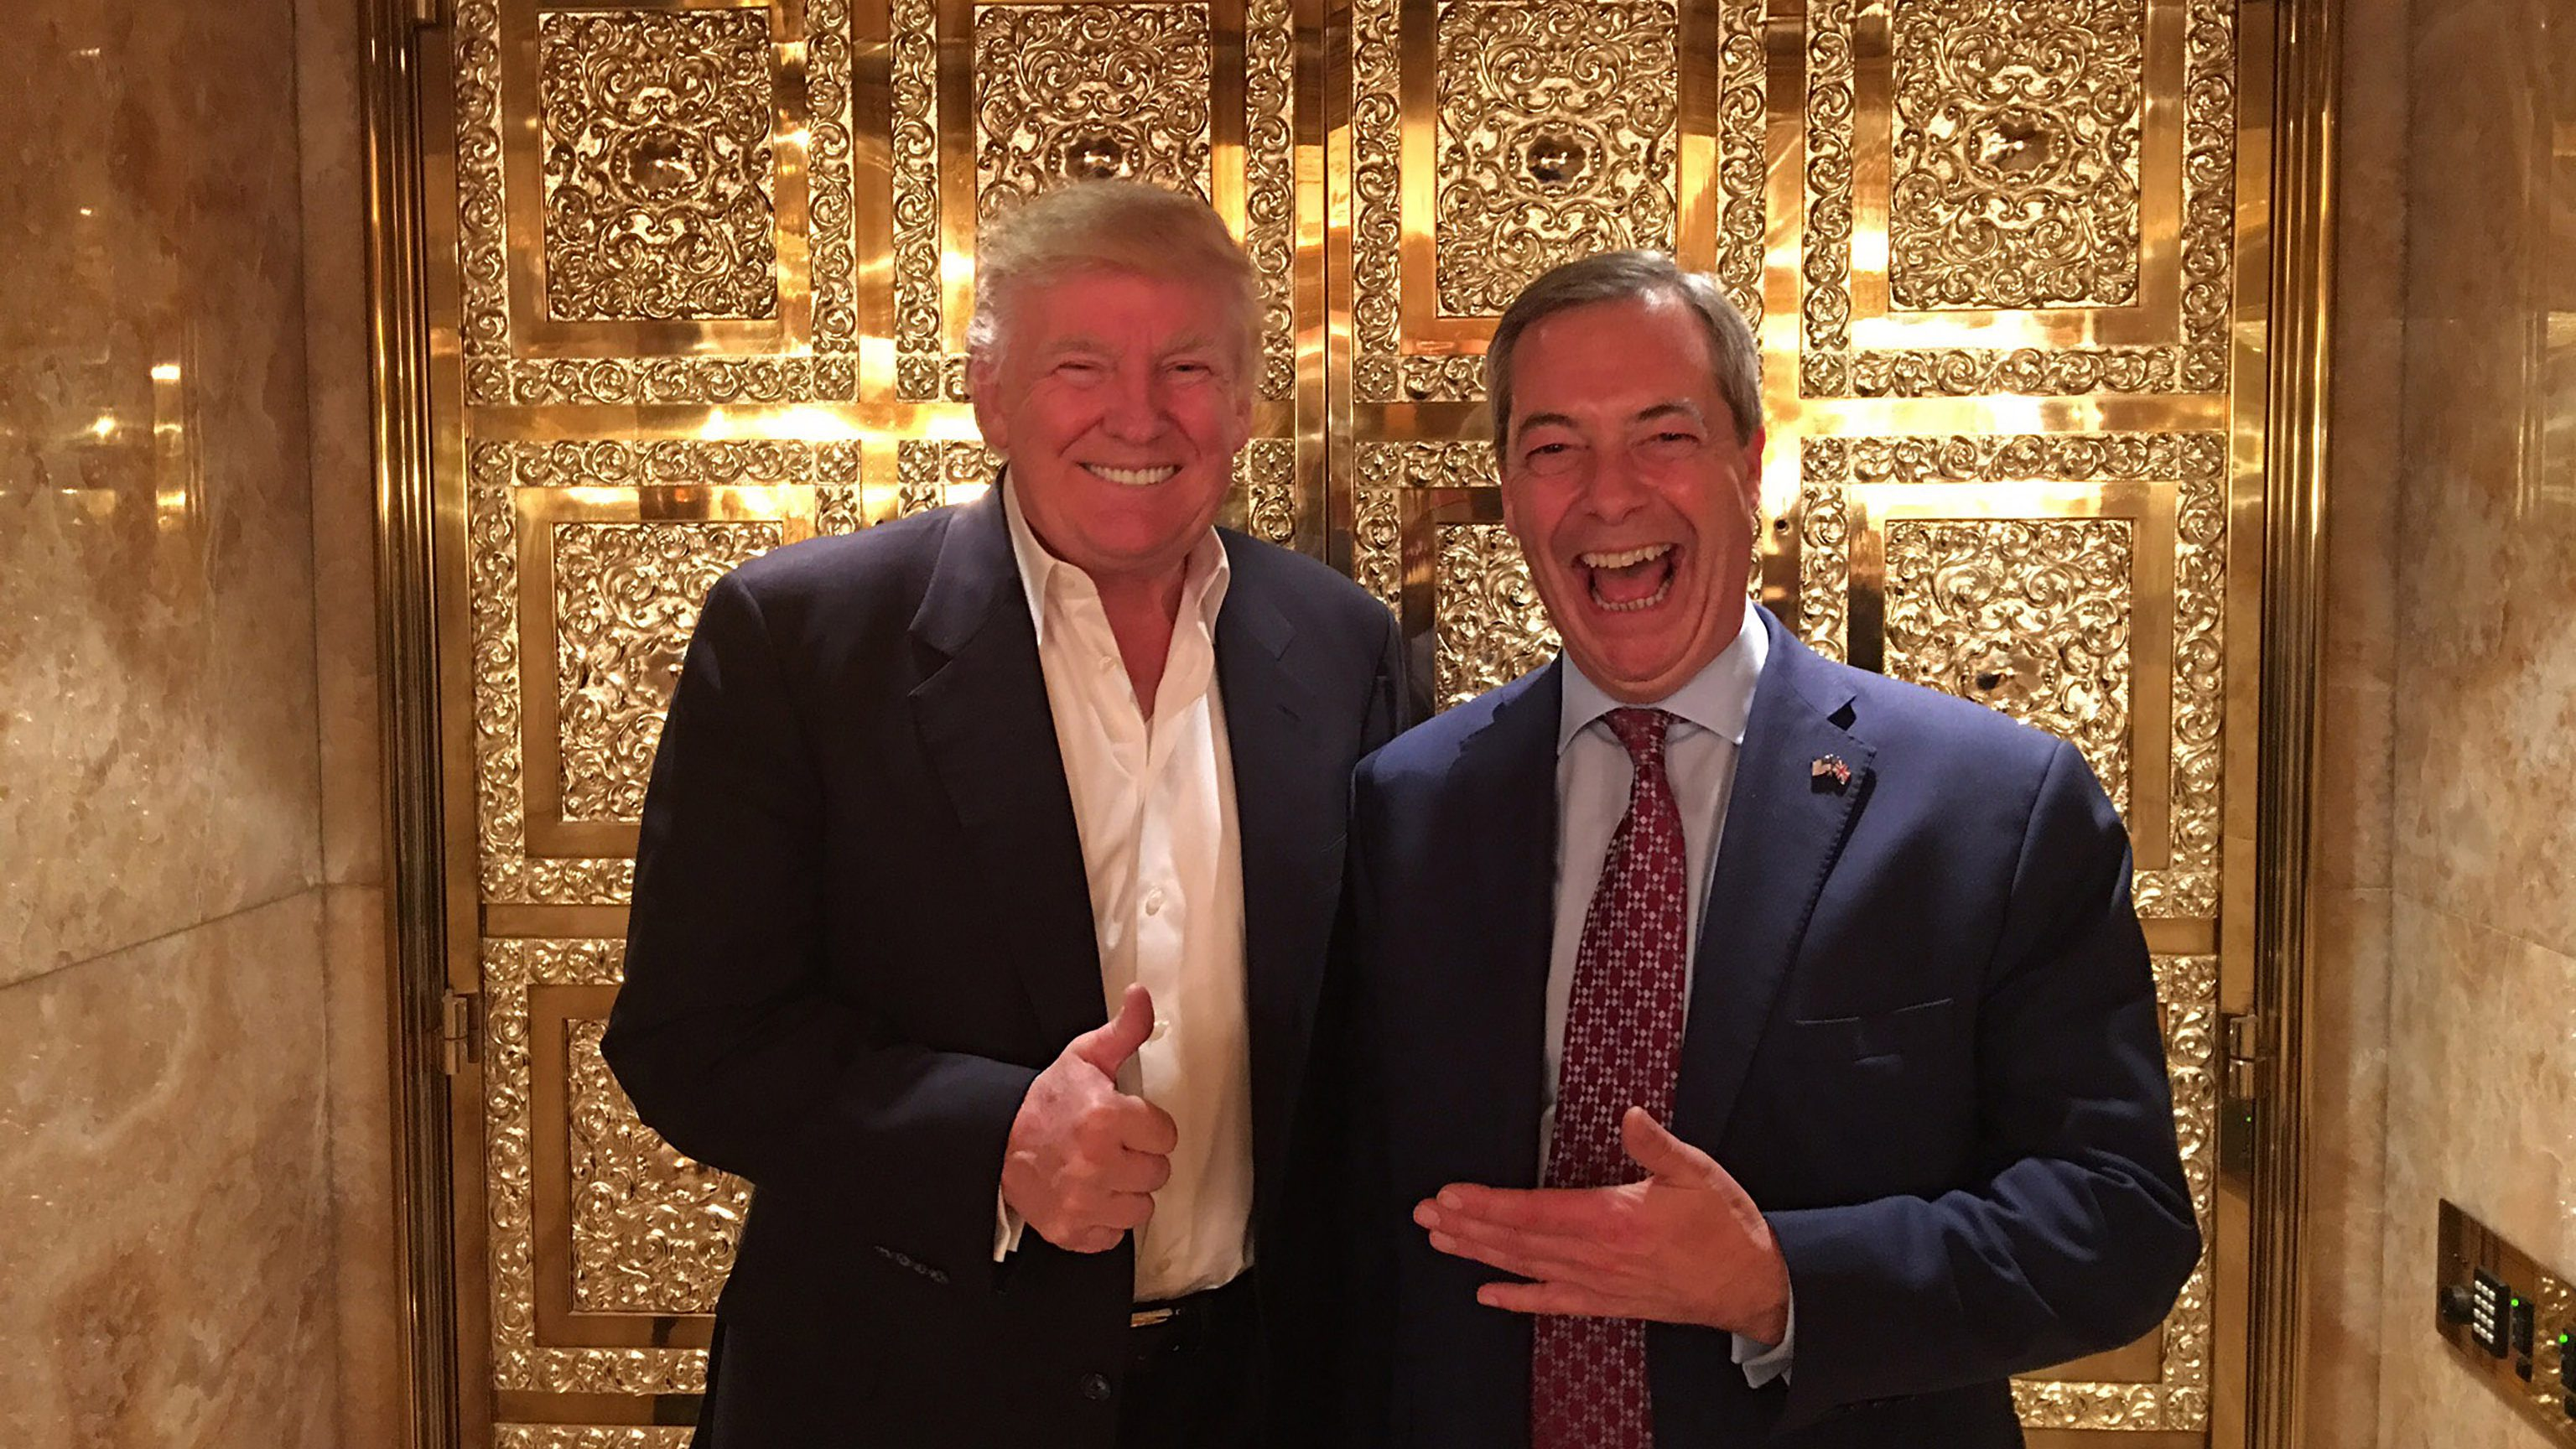 EXCLUSIVE: **PREMIUM EXCLUSIVE RATES APPLY** British politician Nigel Farage meets President Elect Donald Trump at the Trump Tower, NYC on November 12th. Mr Farage - the acting leader of UKIP - was invited to spend time with Mr Trump after joining him on the 2016 US presidential campaign trail.